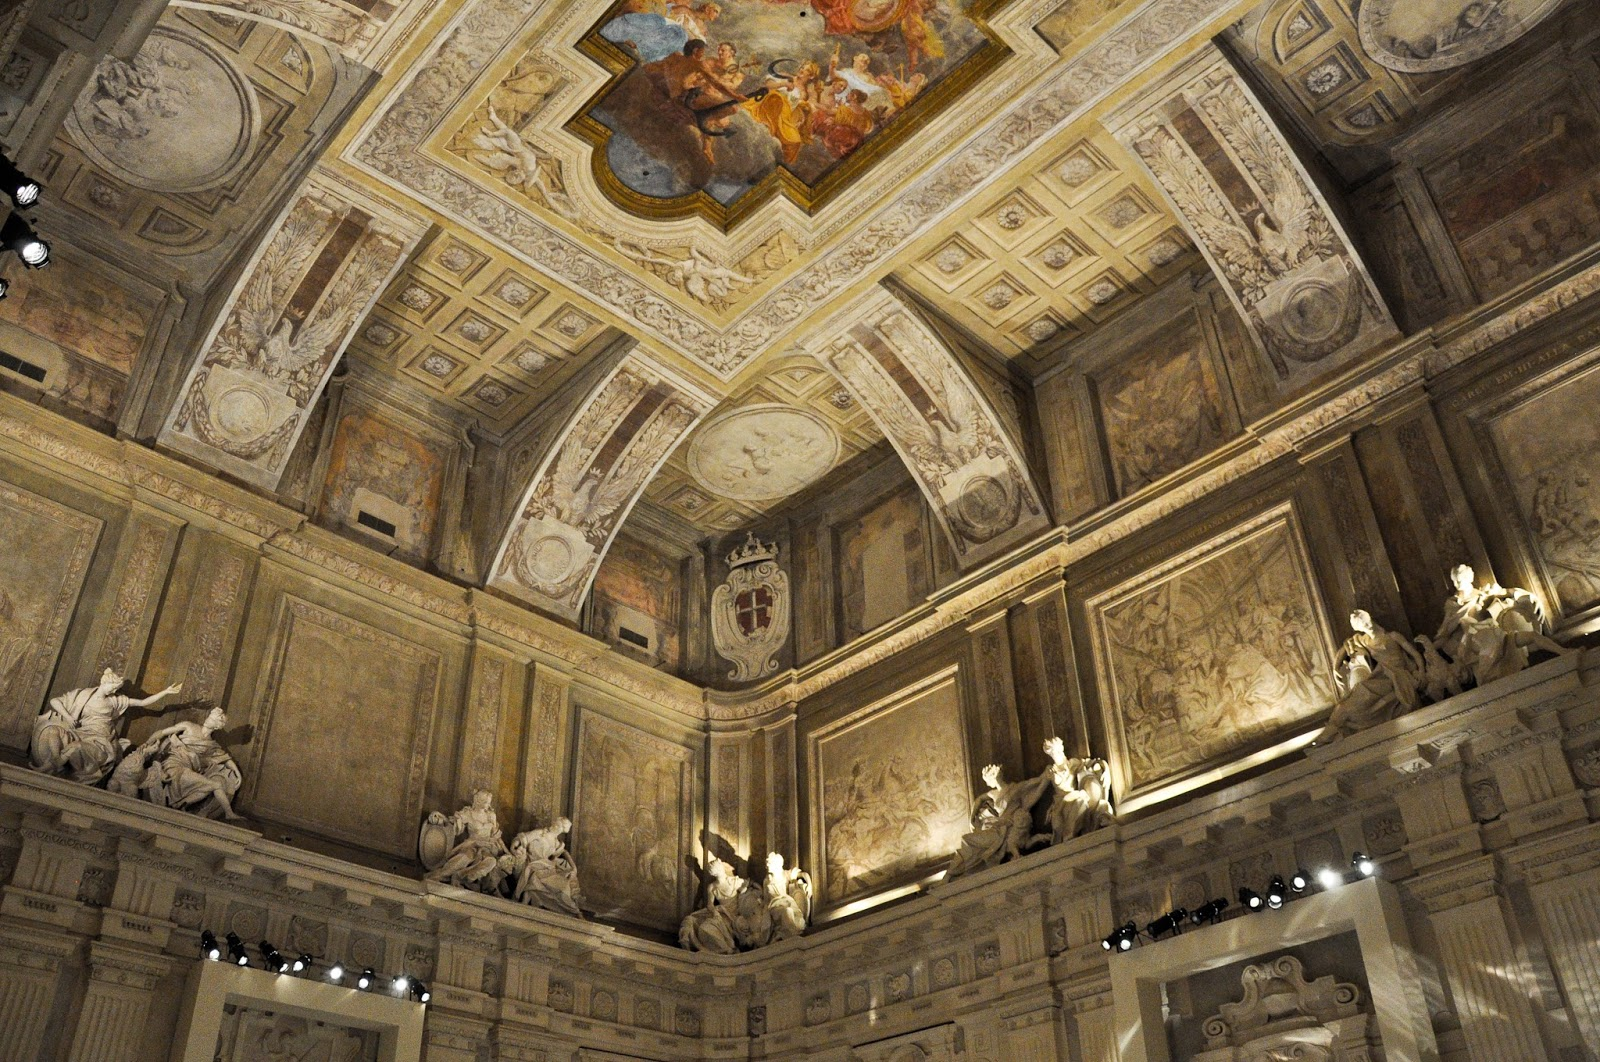 The ceiling in the ball room, First floor, Palazzo Madama, Turin, Italy